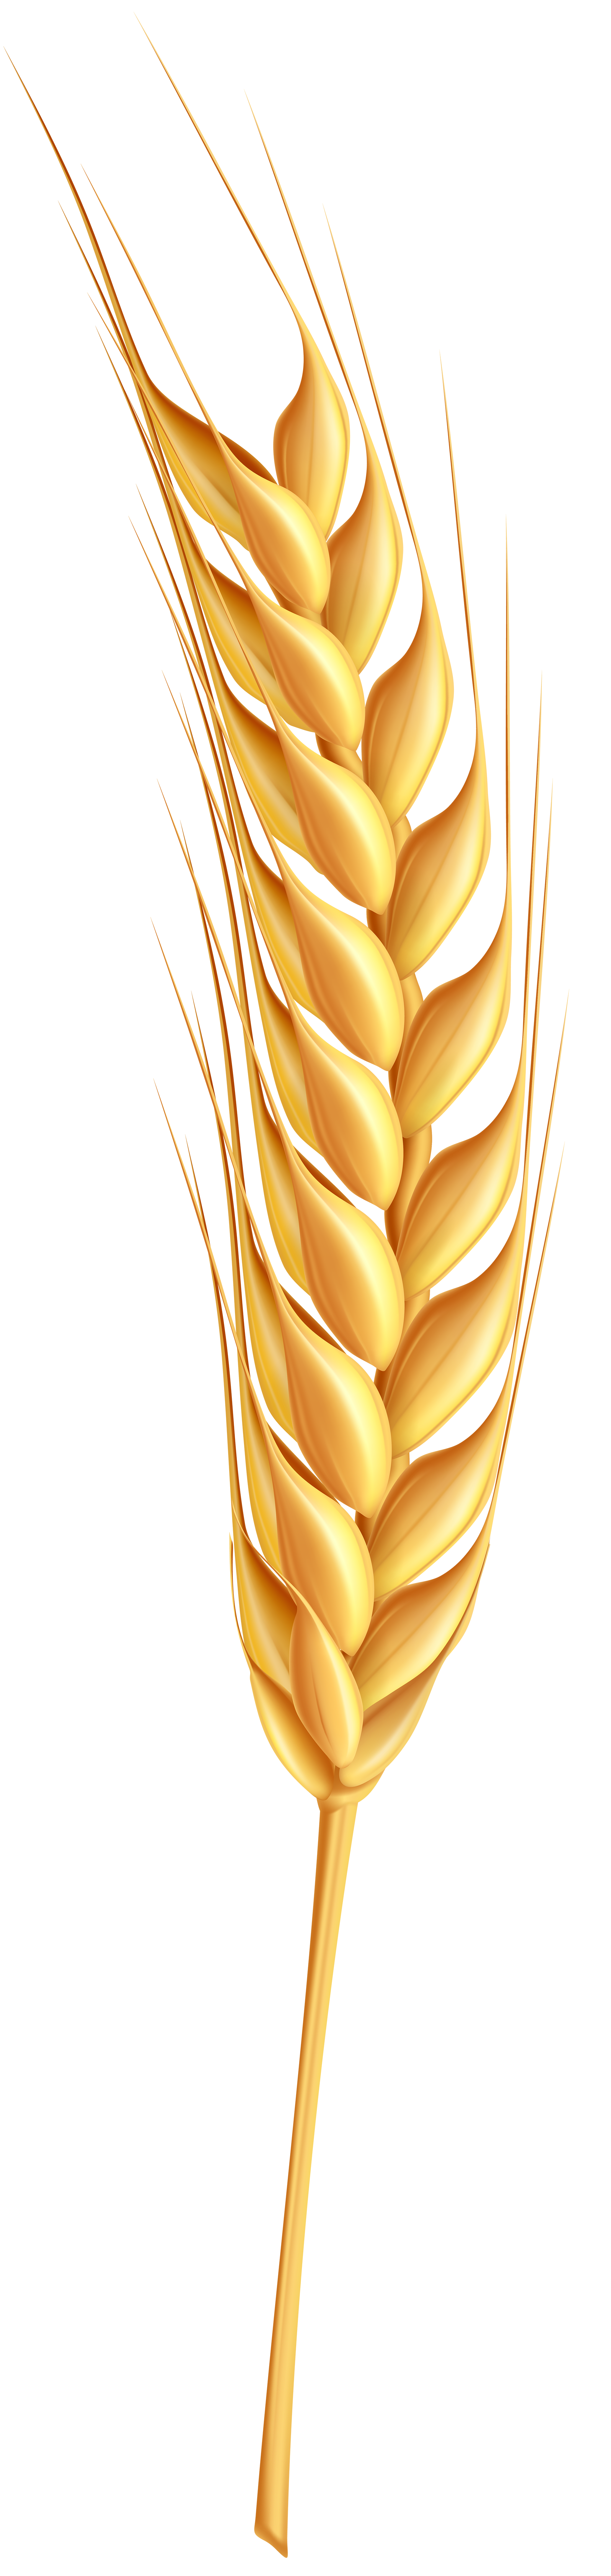 svg download Ear of wheat clipart. Wheatear png clip art